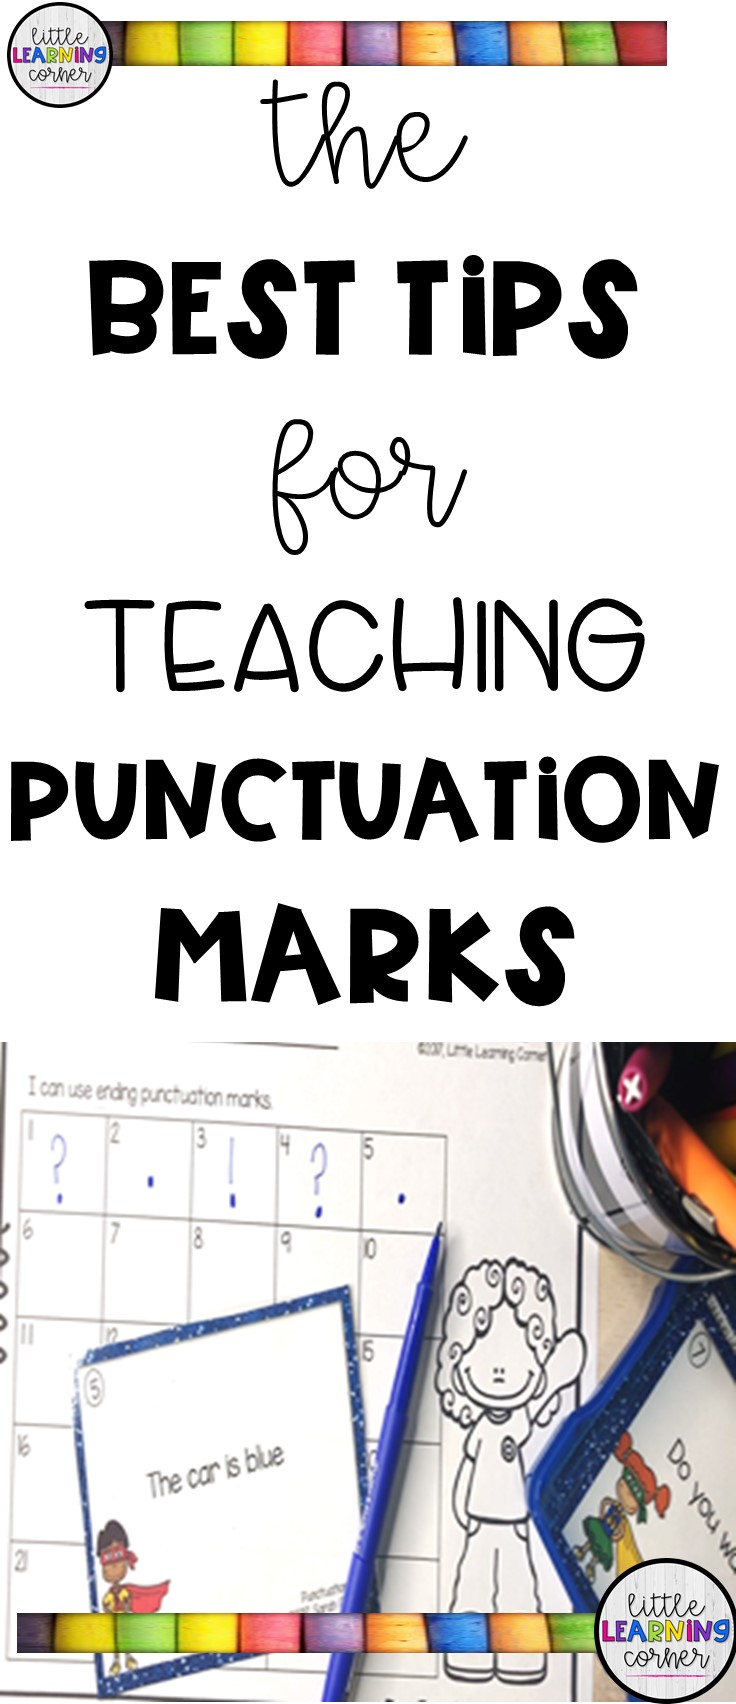 punctuation-marks-pin